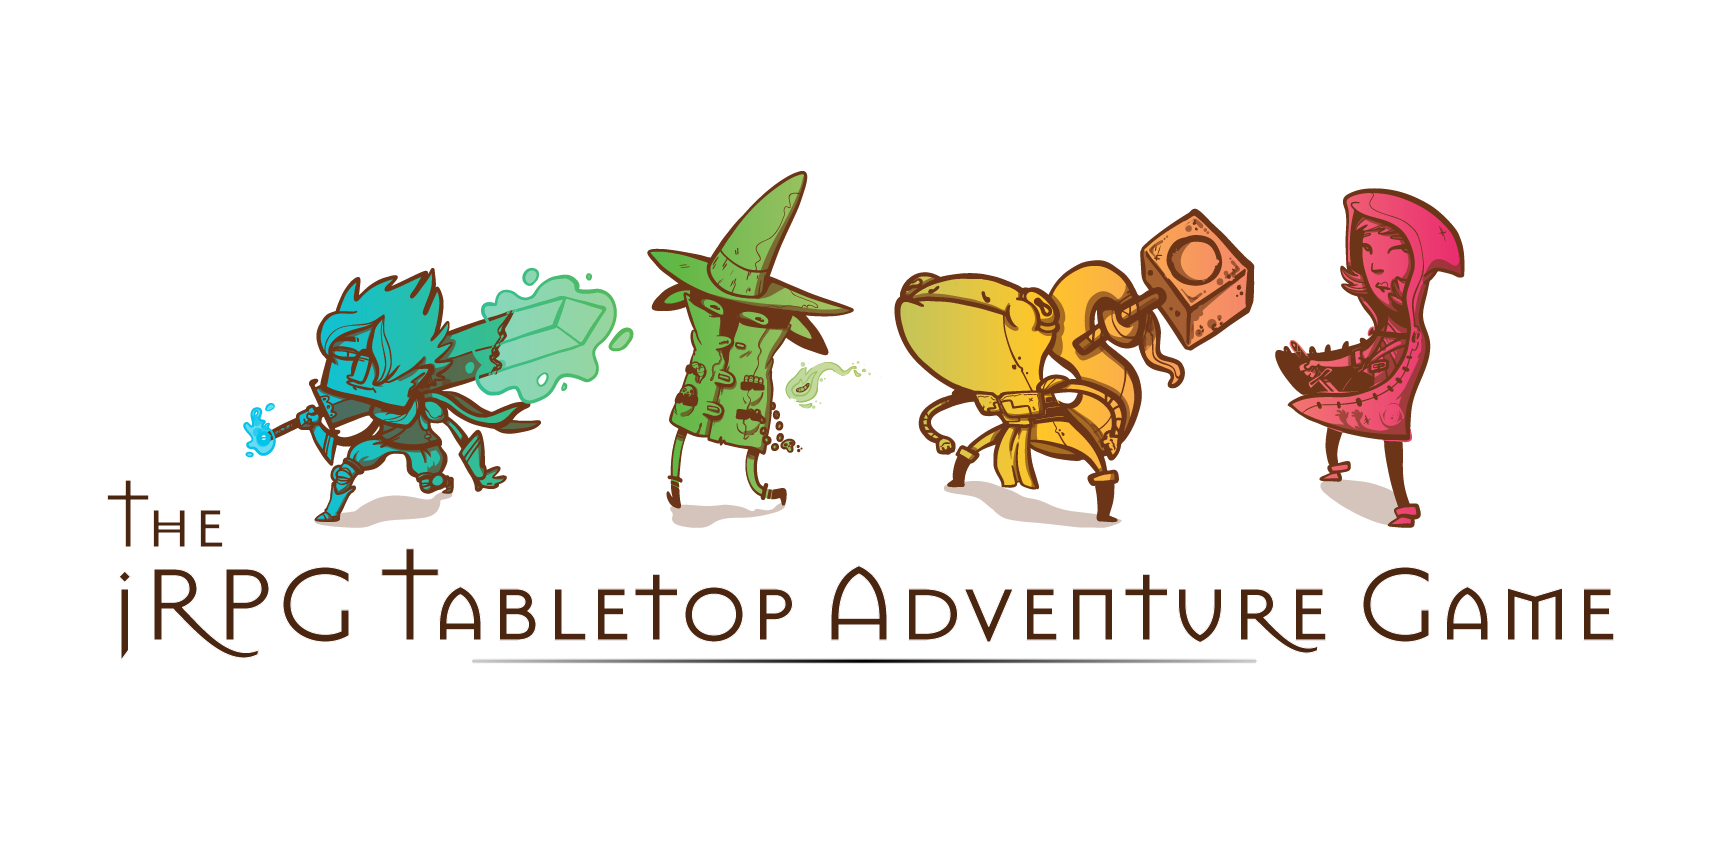 The JRPG Tabletop Adventure Game